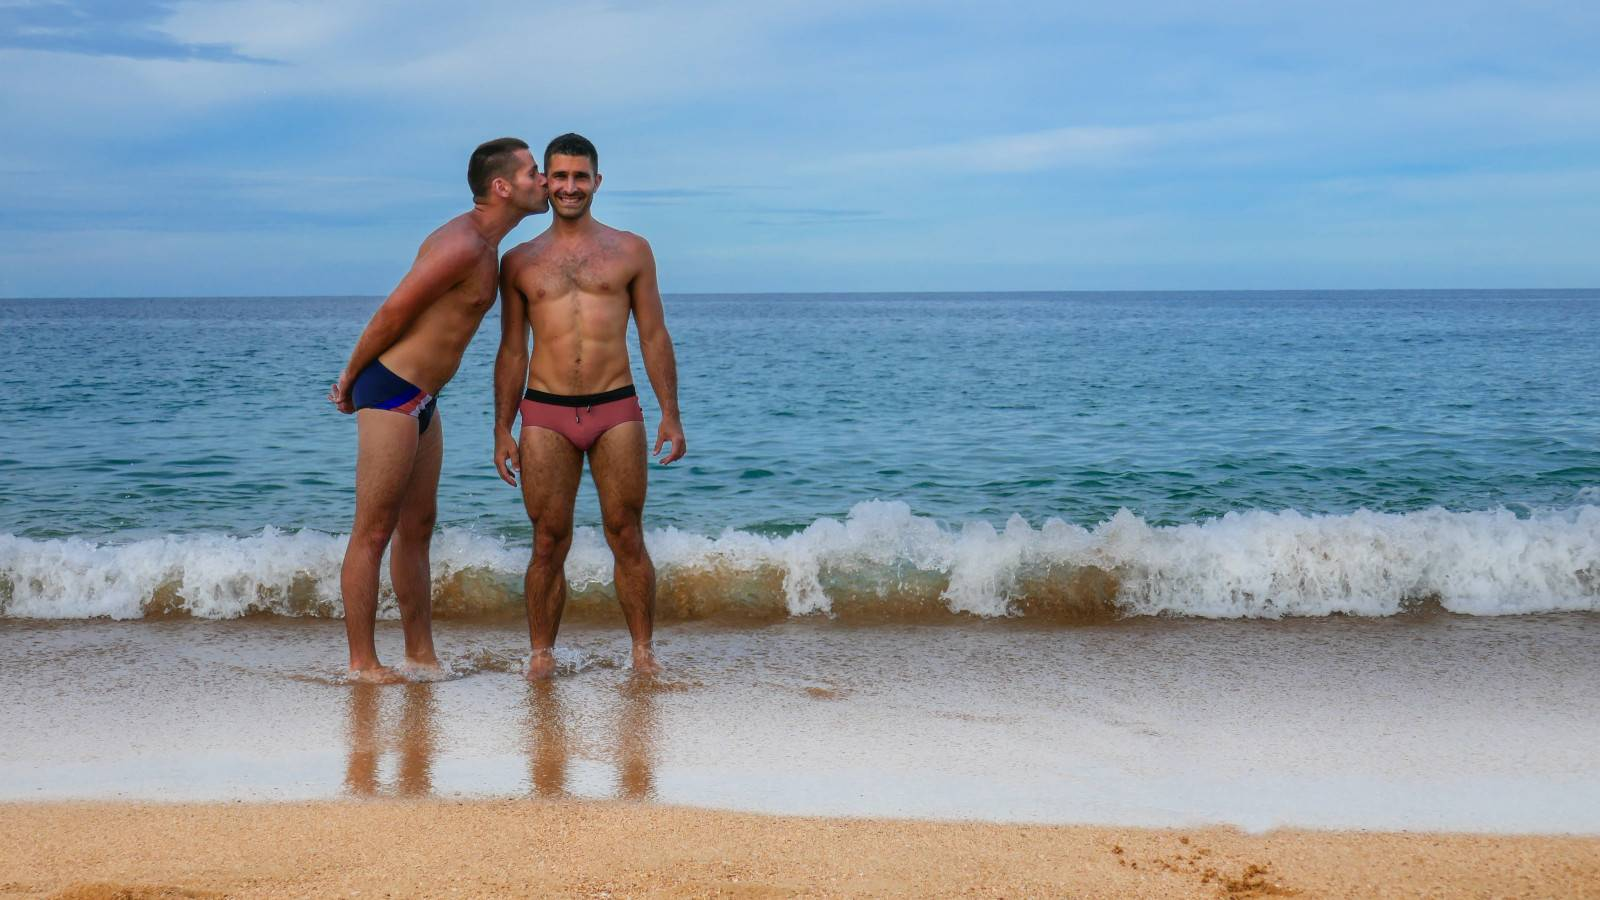 Beach 19 in Lisbon is a famous cruising spot for gays